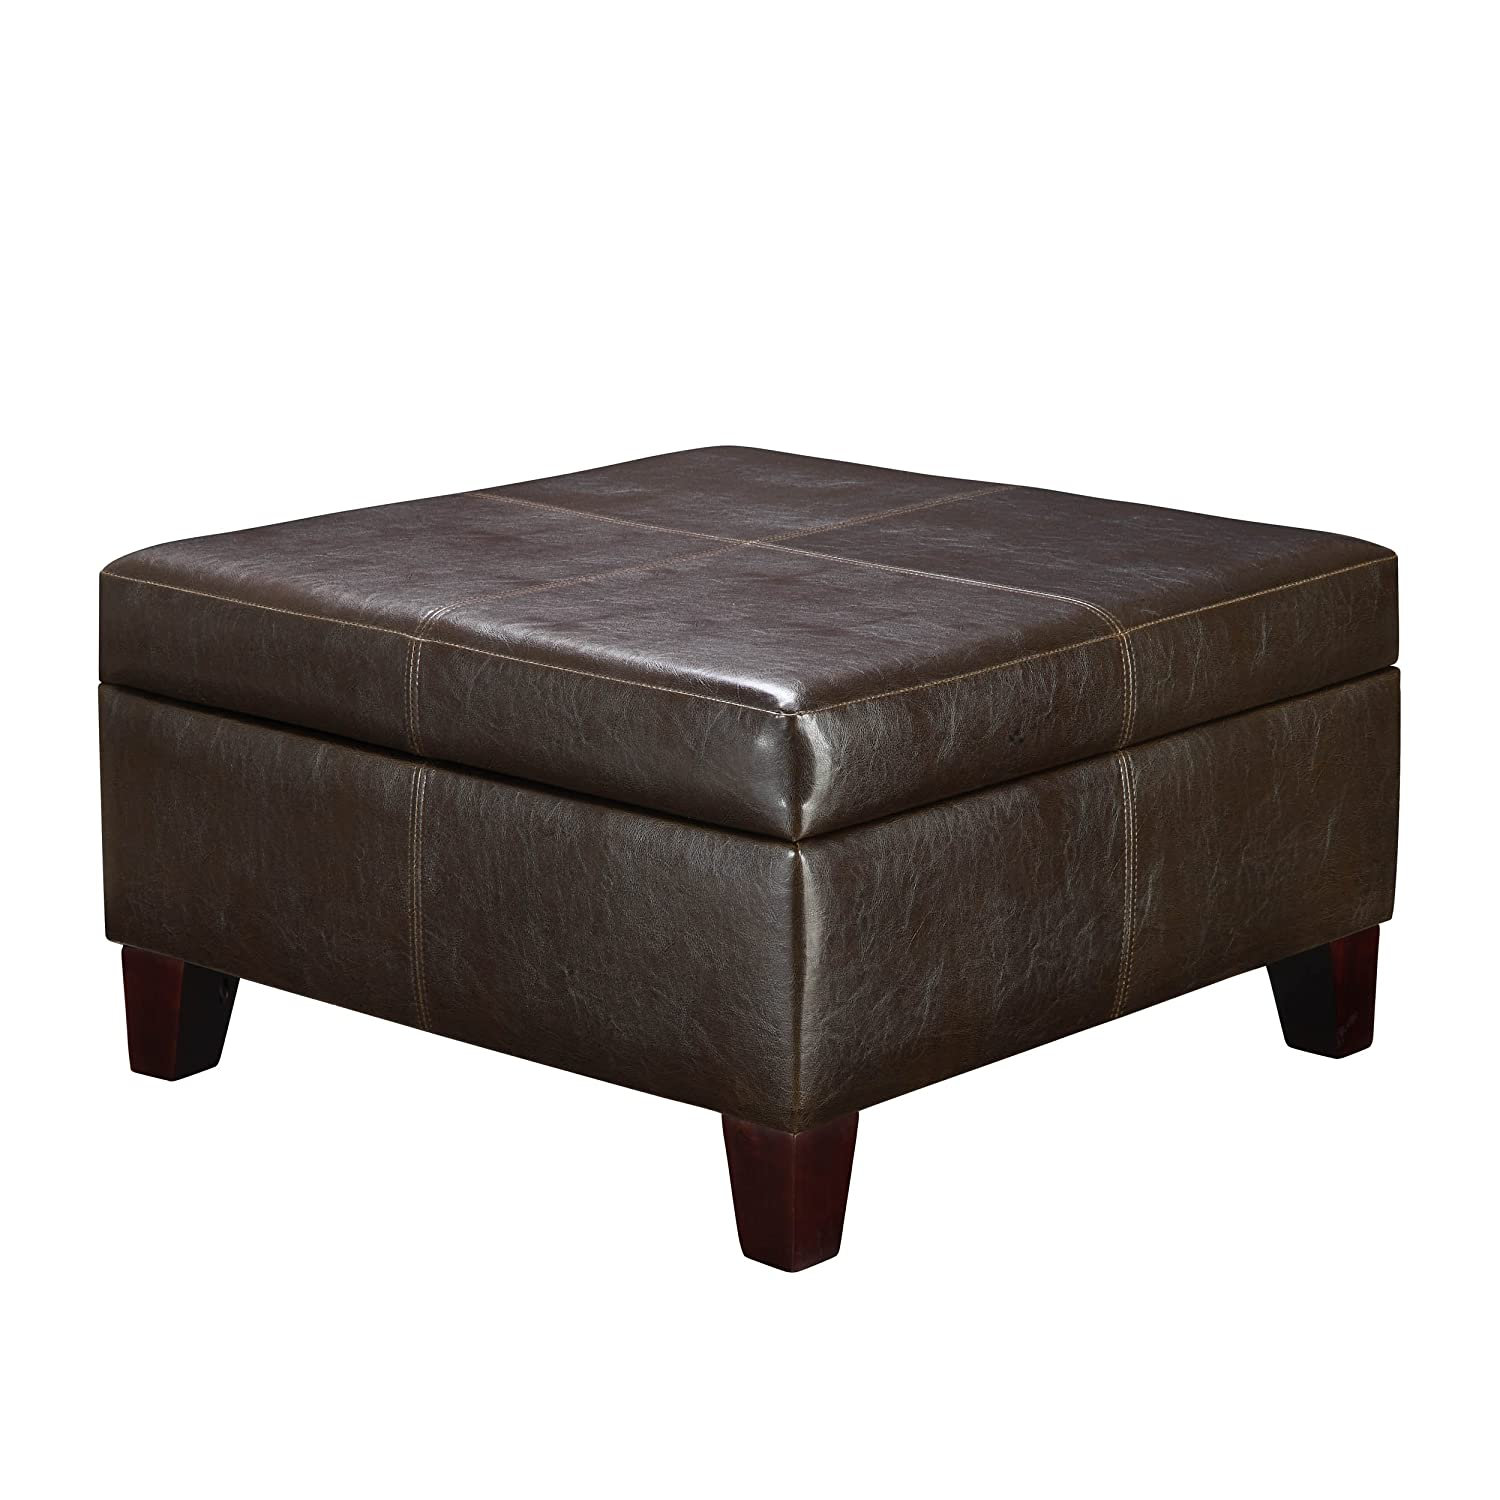 Merveilleux Amazon.com: Dorel Living Faux Leather Square Storage Ottoman, Espresso:  Kitchen U0026 Dining